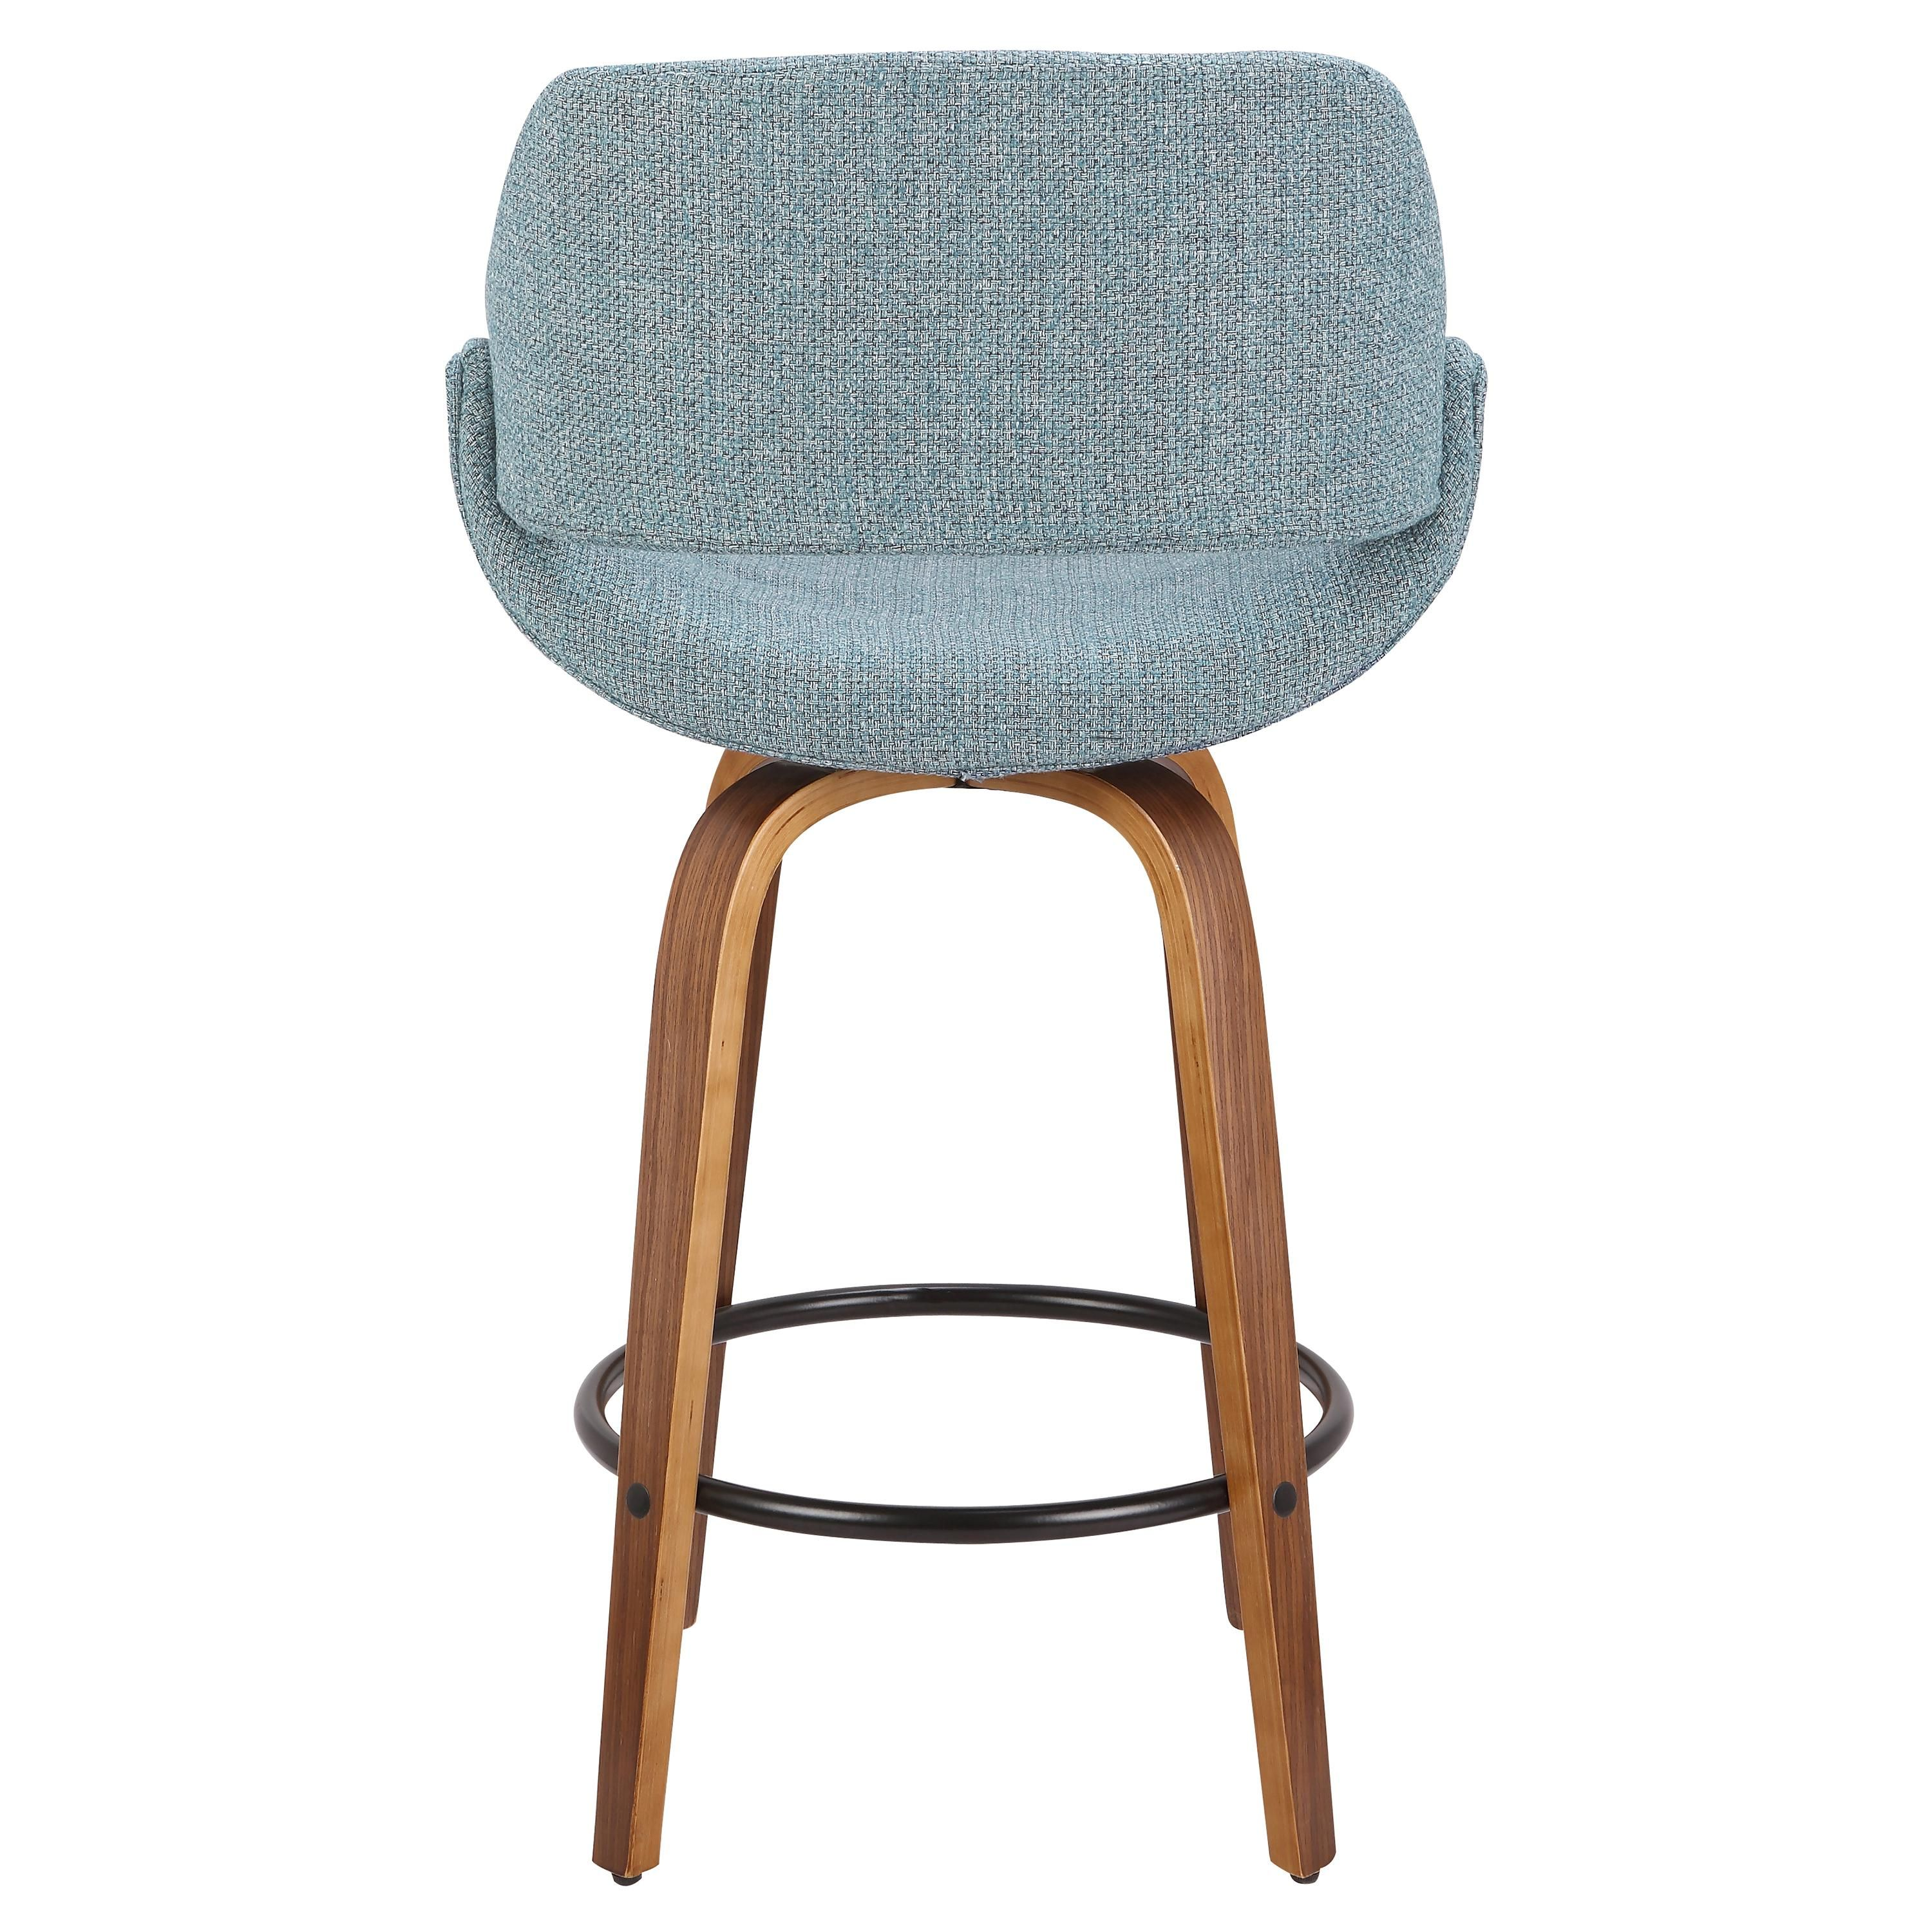 Groovy Blue And Brown 26 Inch Counter Height Stool Set Of 2 Fabrico Camellatalisay Diy Chair Ideas Camellatalisaycom